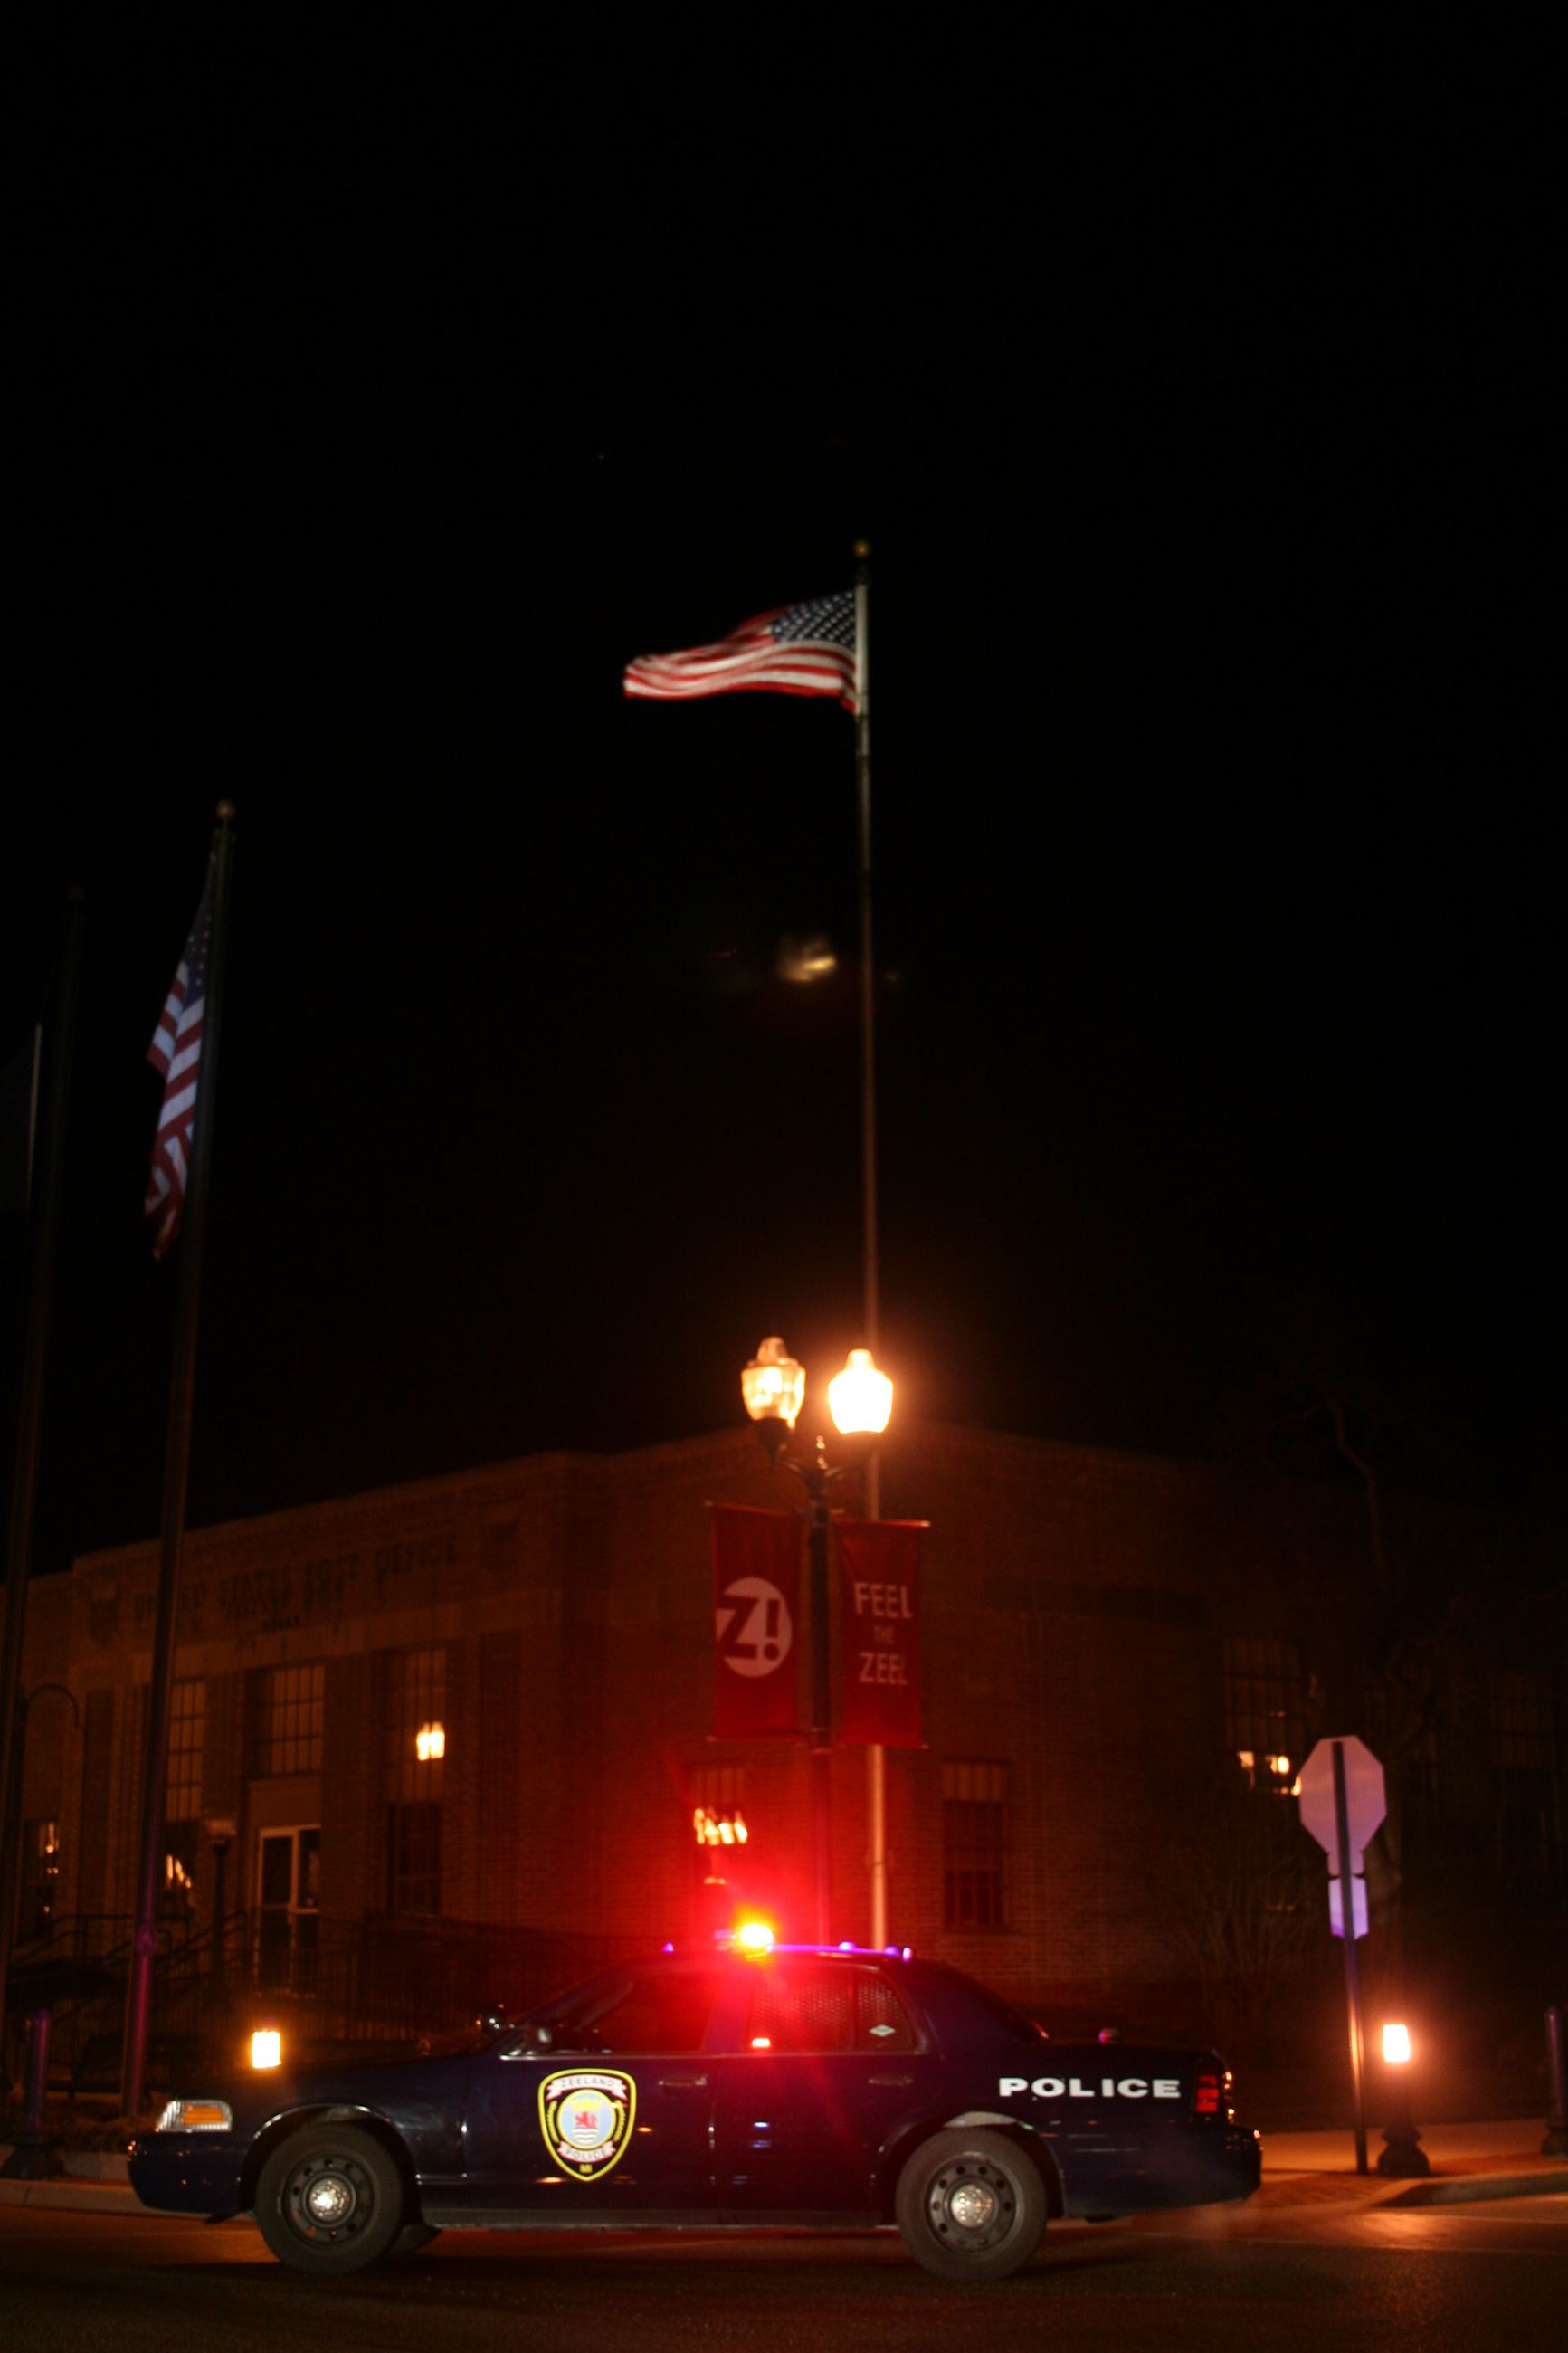 Police Car at Night with Flag